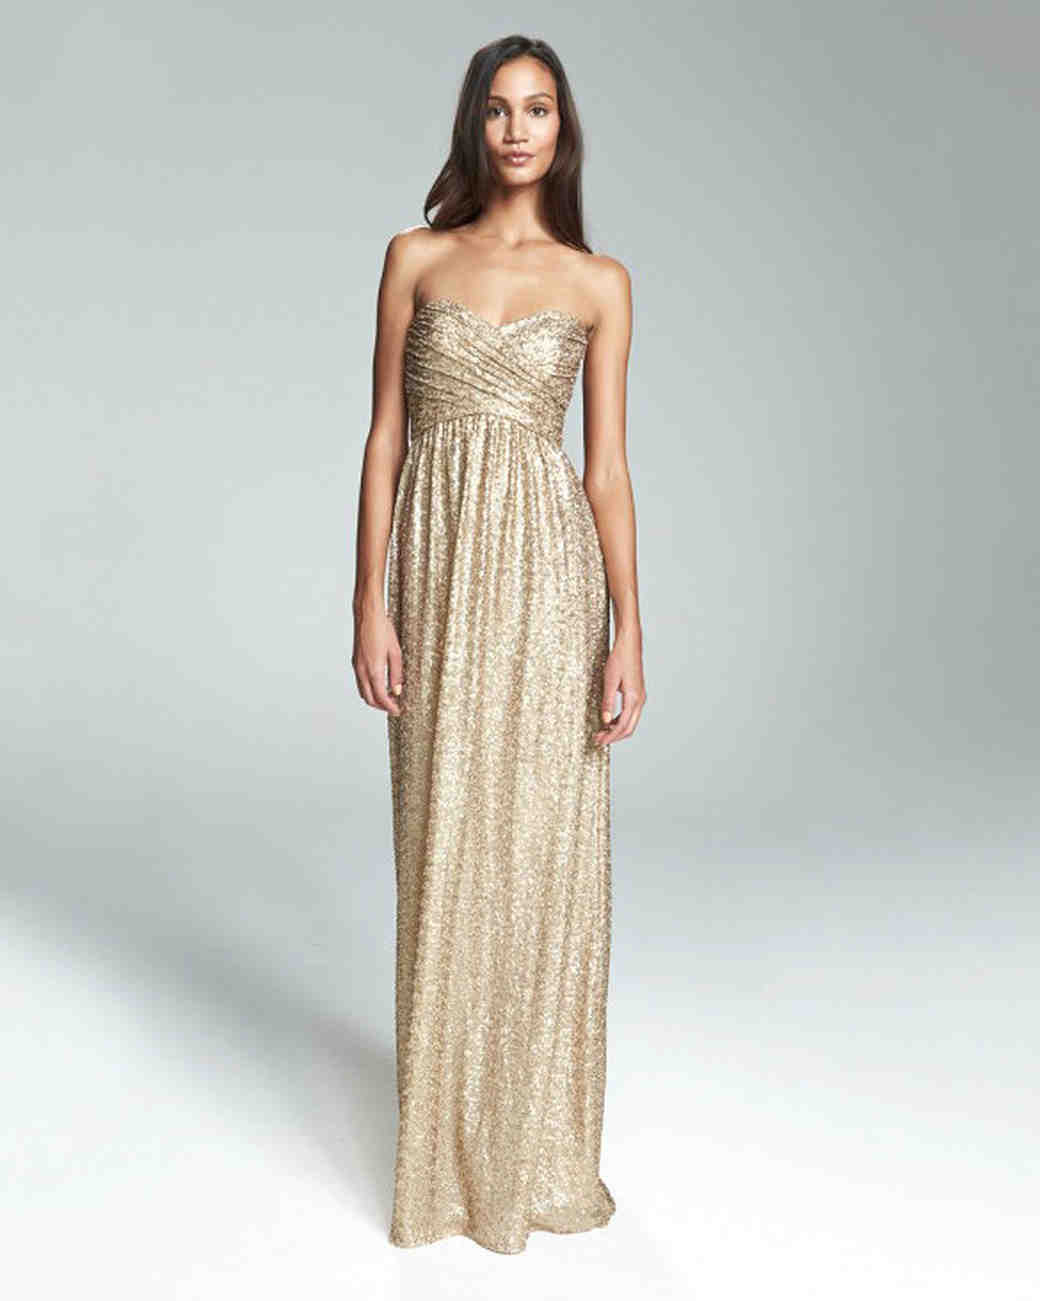 563d5b65d9b Metallic Bridesmaid Dresses That You Can Wear Over and Over Again ...